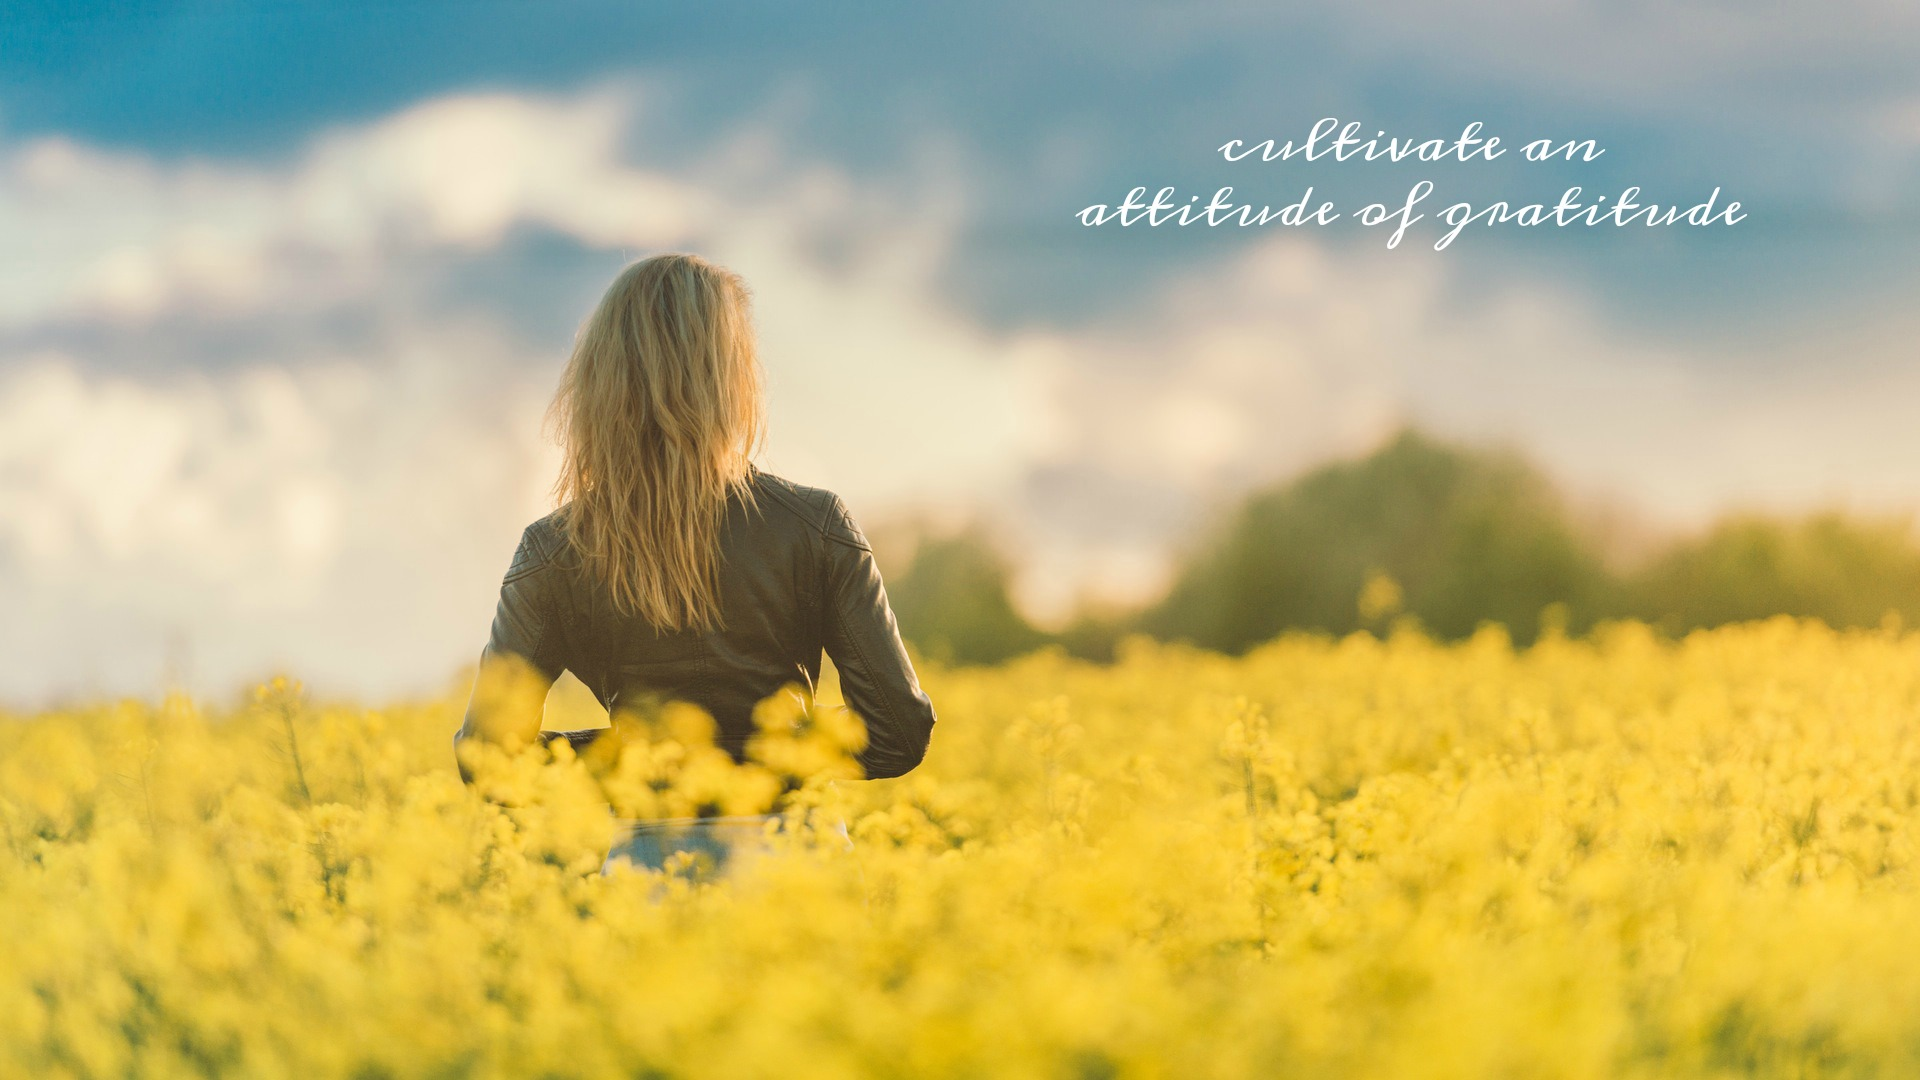 Cultivate an Attitude of Gratitude. Desktop wallpaper to download for free. Circle of Daydreams. www.circleofdaydreams.com